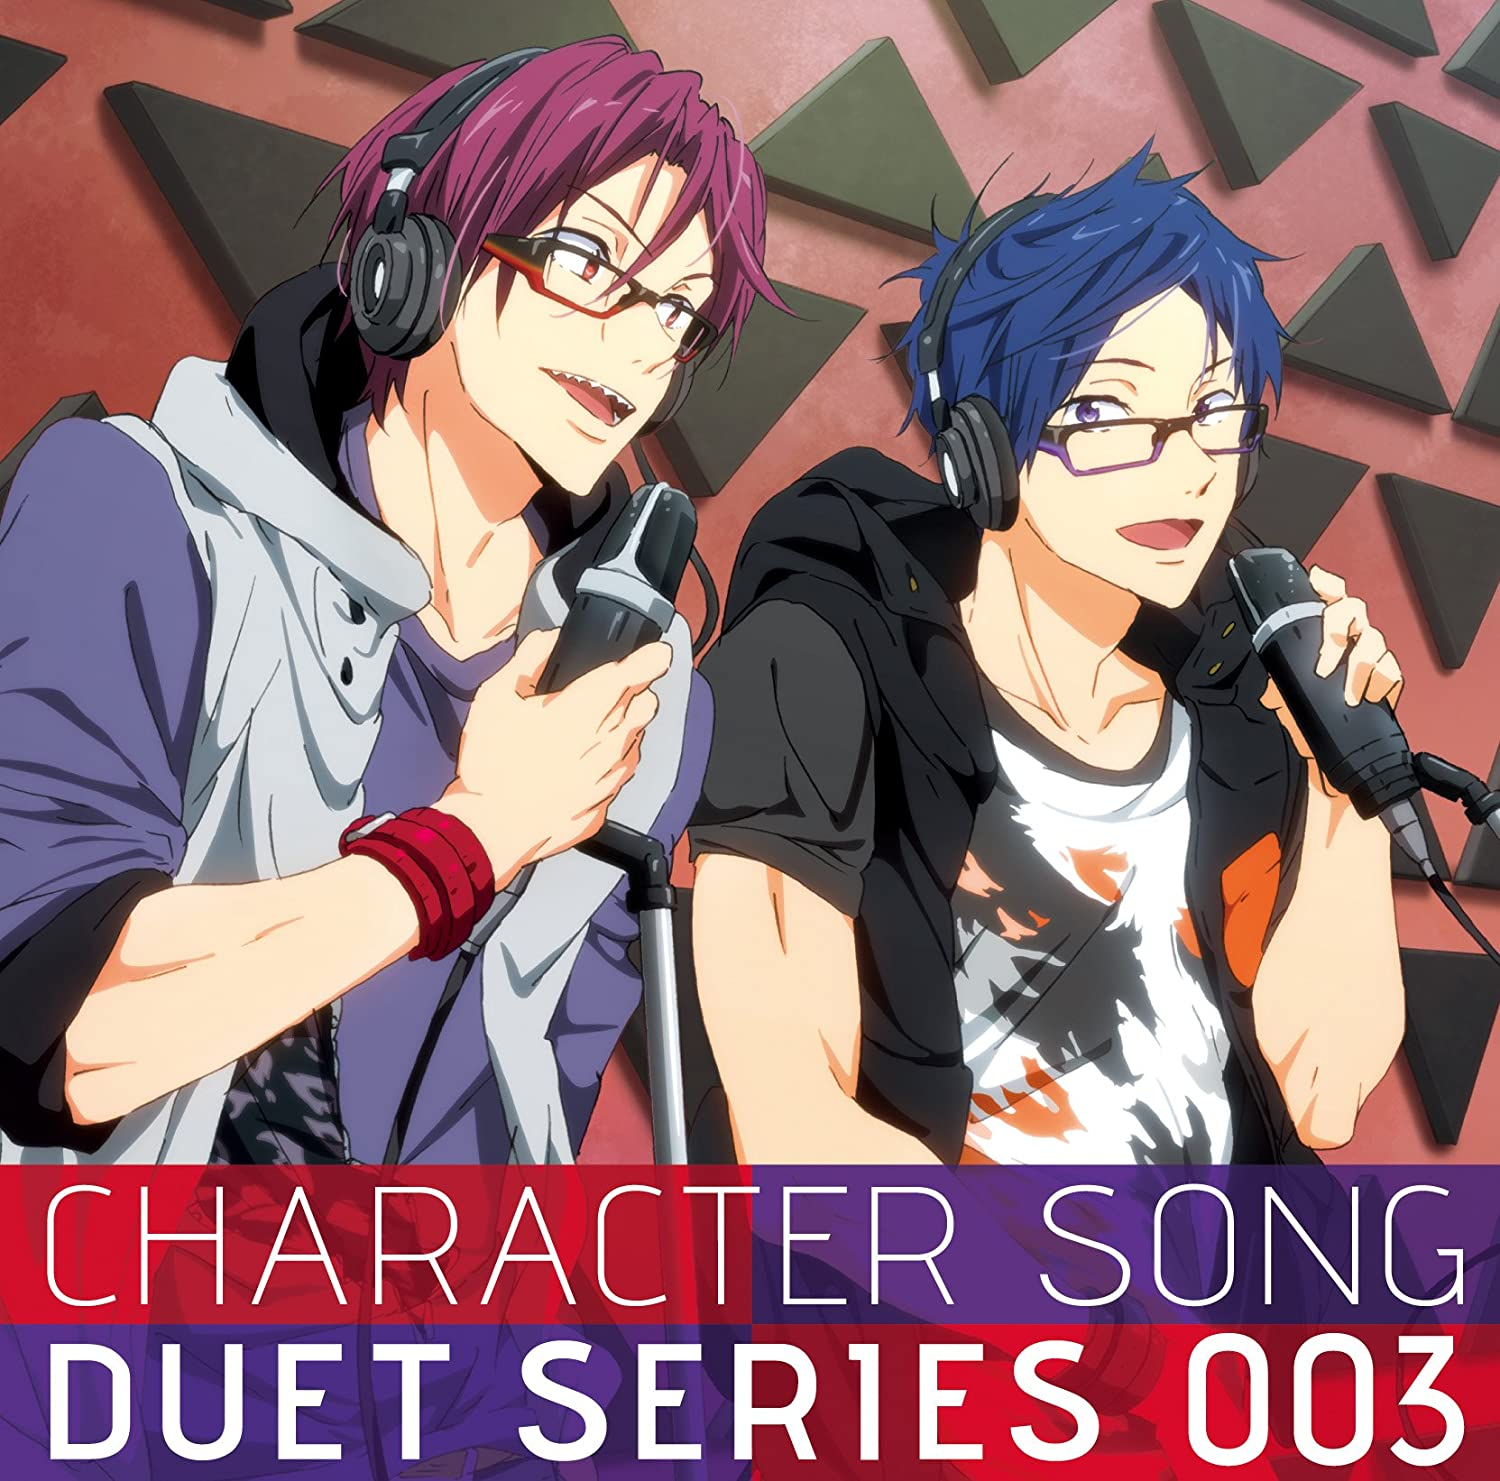 Rin Matsuoka Mamoru Miyano Rei Ryugasaki Daisuke Hirakawa Free Anime Character Song Duet Series Vol 3 Japan Cd Lacm 14163 By Rin Matsuoka Mamoru Miyano Rei Ryugasaki Daisuke Hirakawa Amazon Co Uk Music Rin is pretty common name in the anime world, but which one is the so which rin takes the crown to become the rin of all rins? amazon co uk